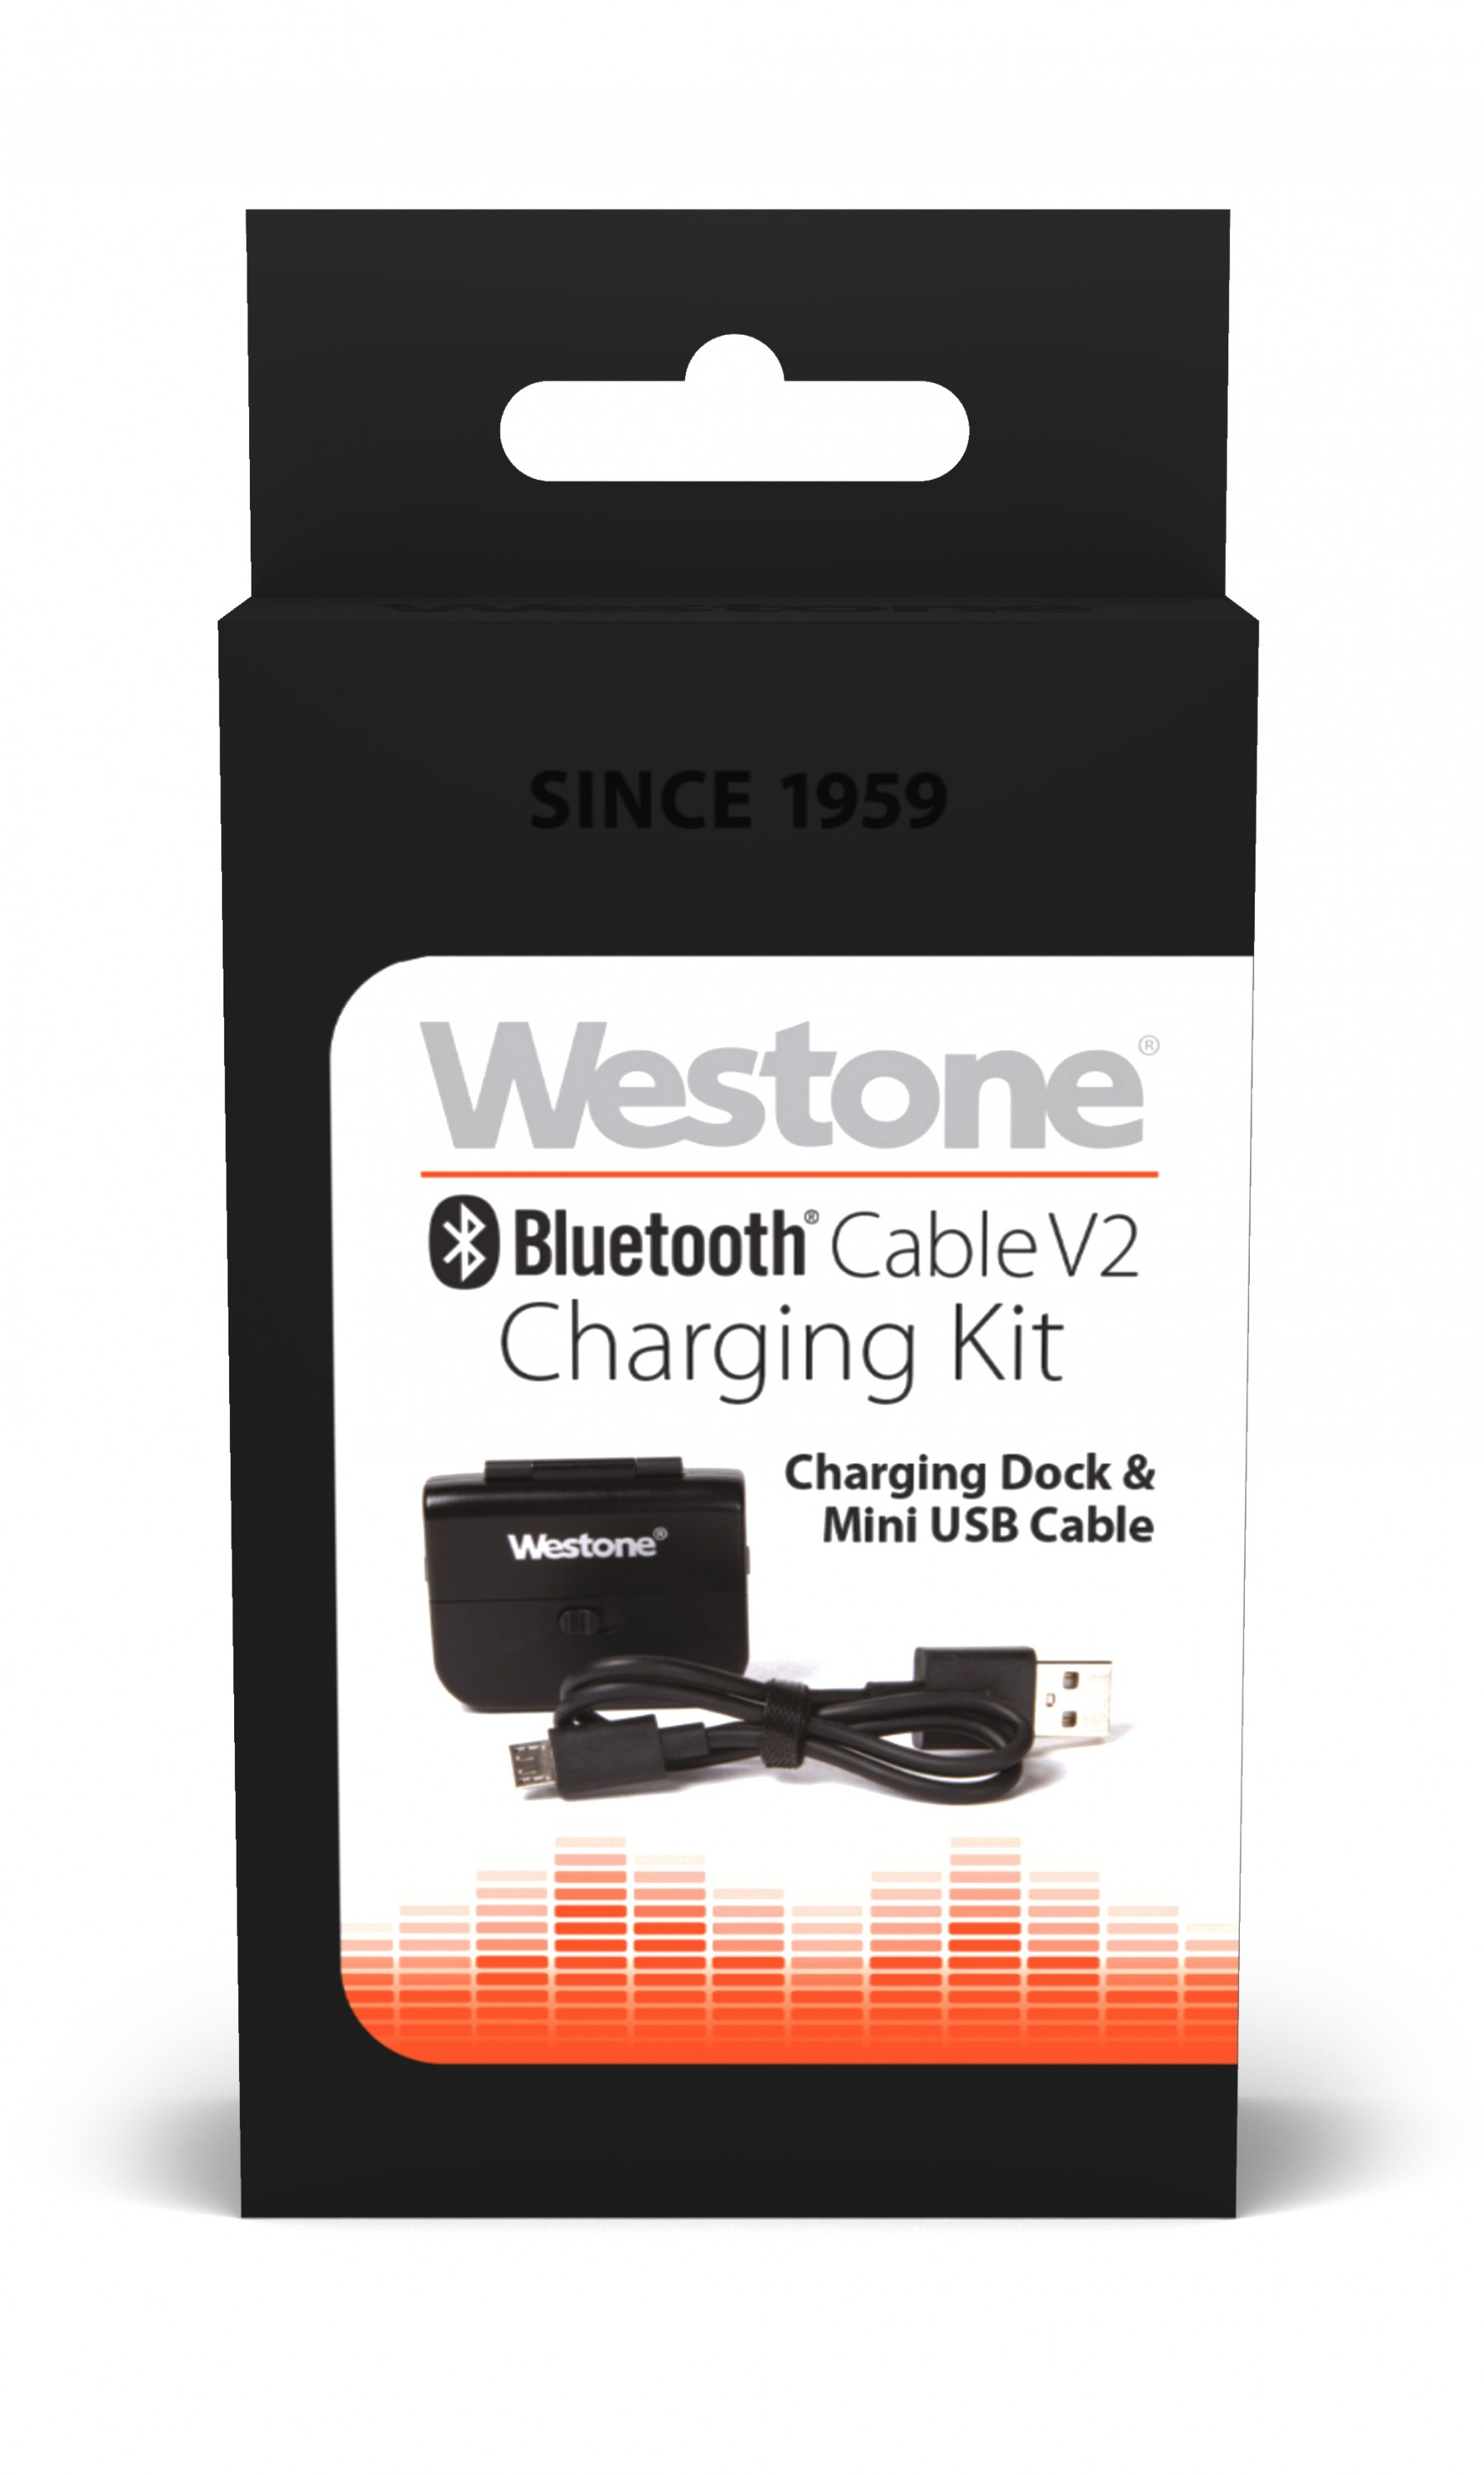 Bluetooth Cable V2 Charging Kit package